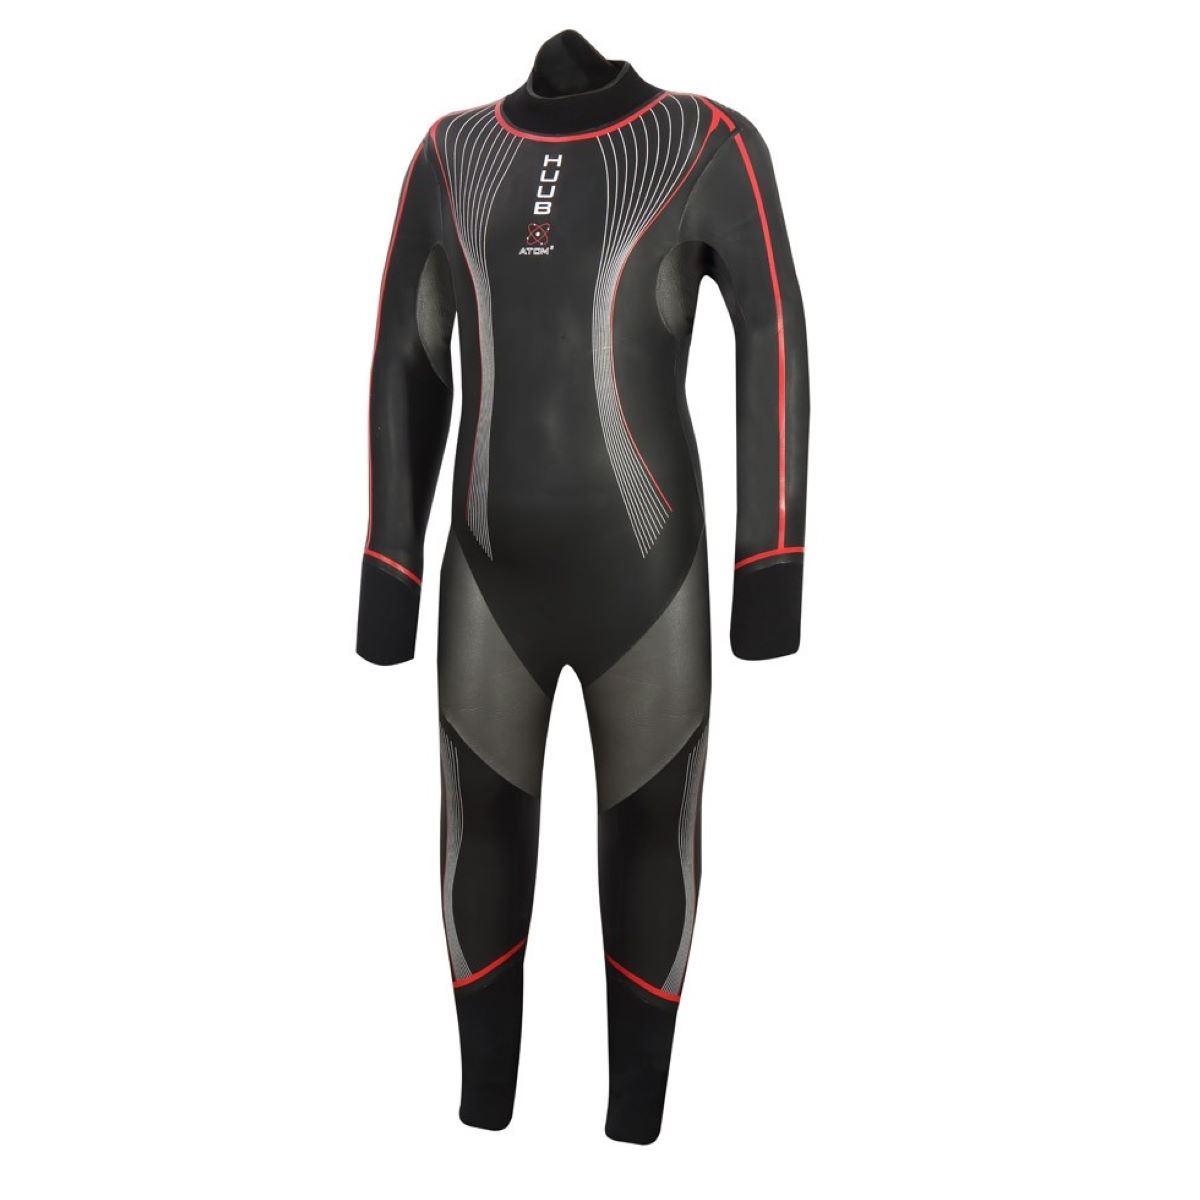 Image of Combinaison Enfant HUUB Atom 2 - 8 to 9 Noir/Rouge | Combinaisons